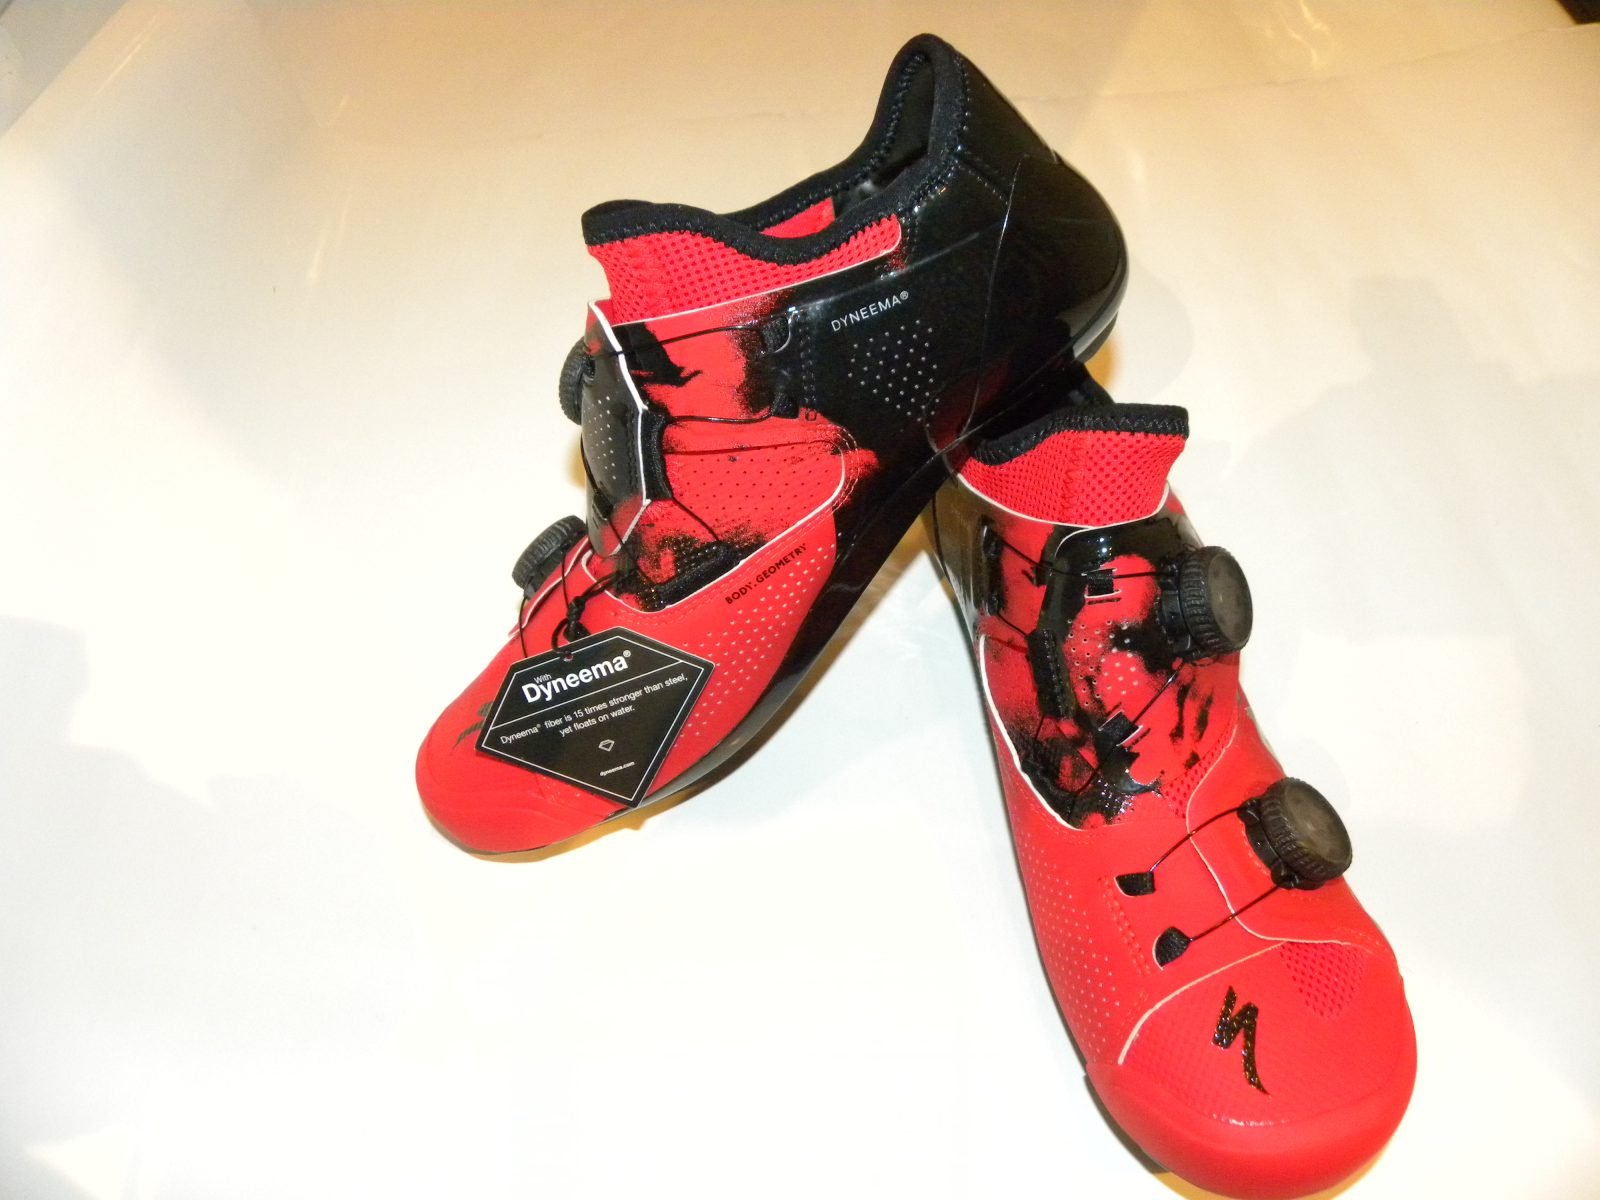 在庫あります!S-Works Ares Road Shoes